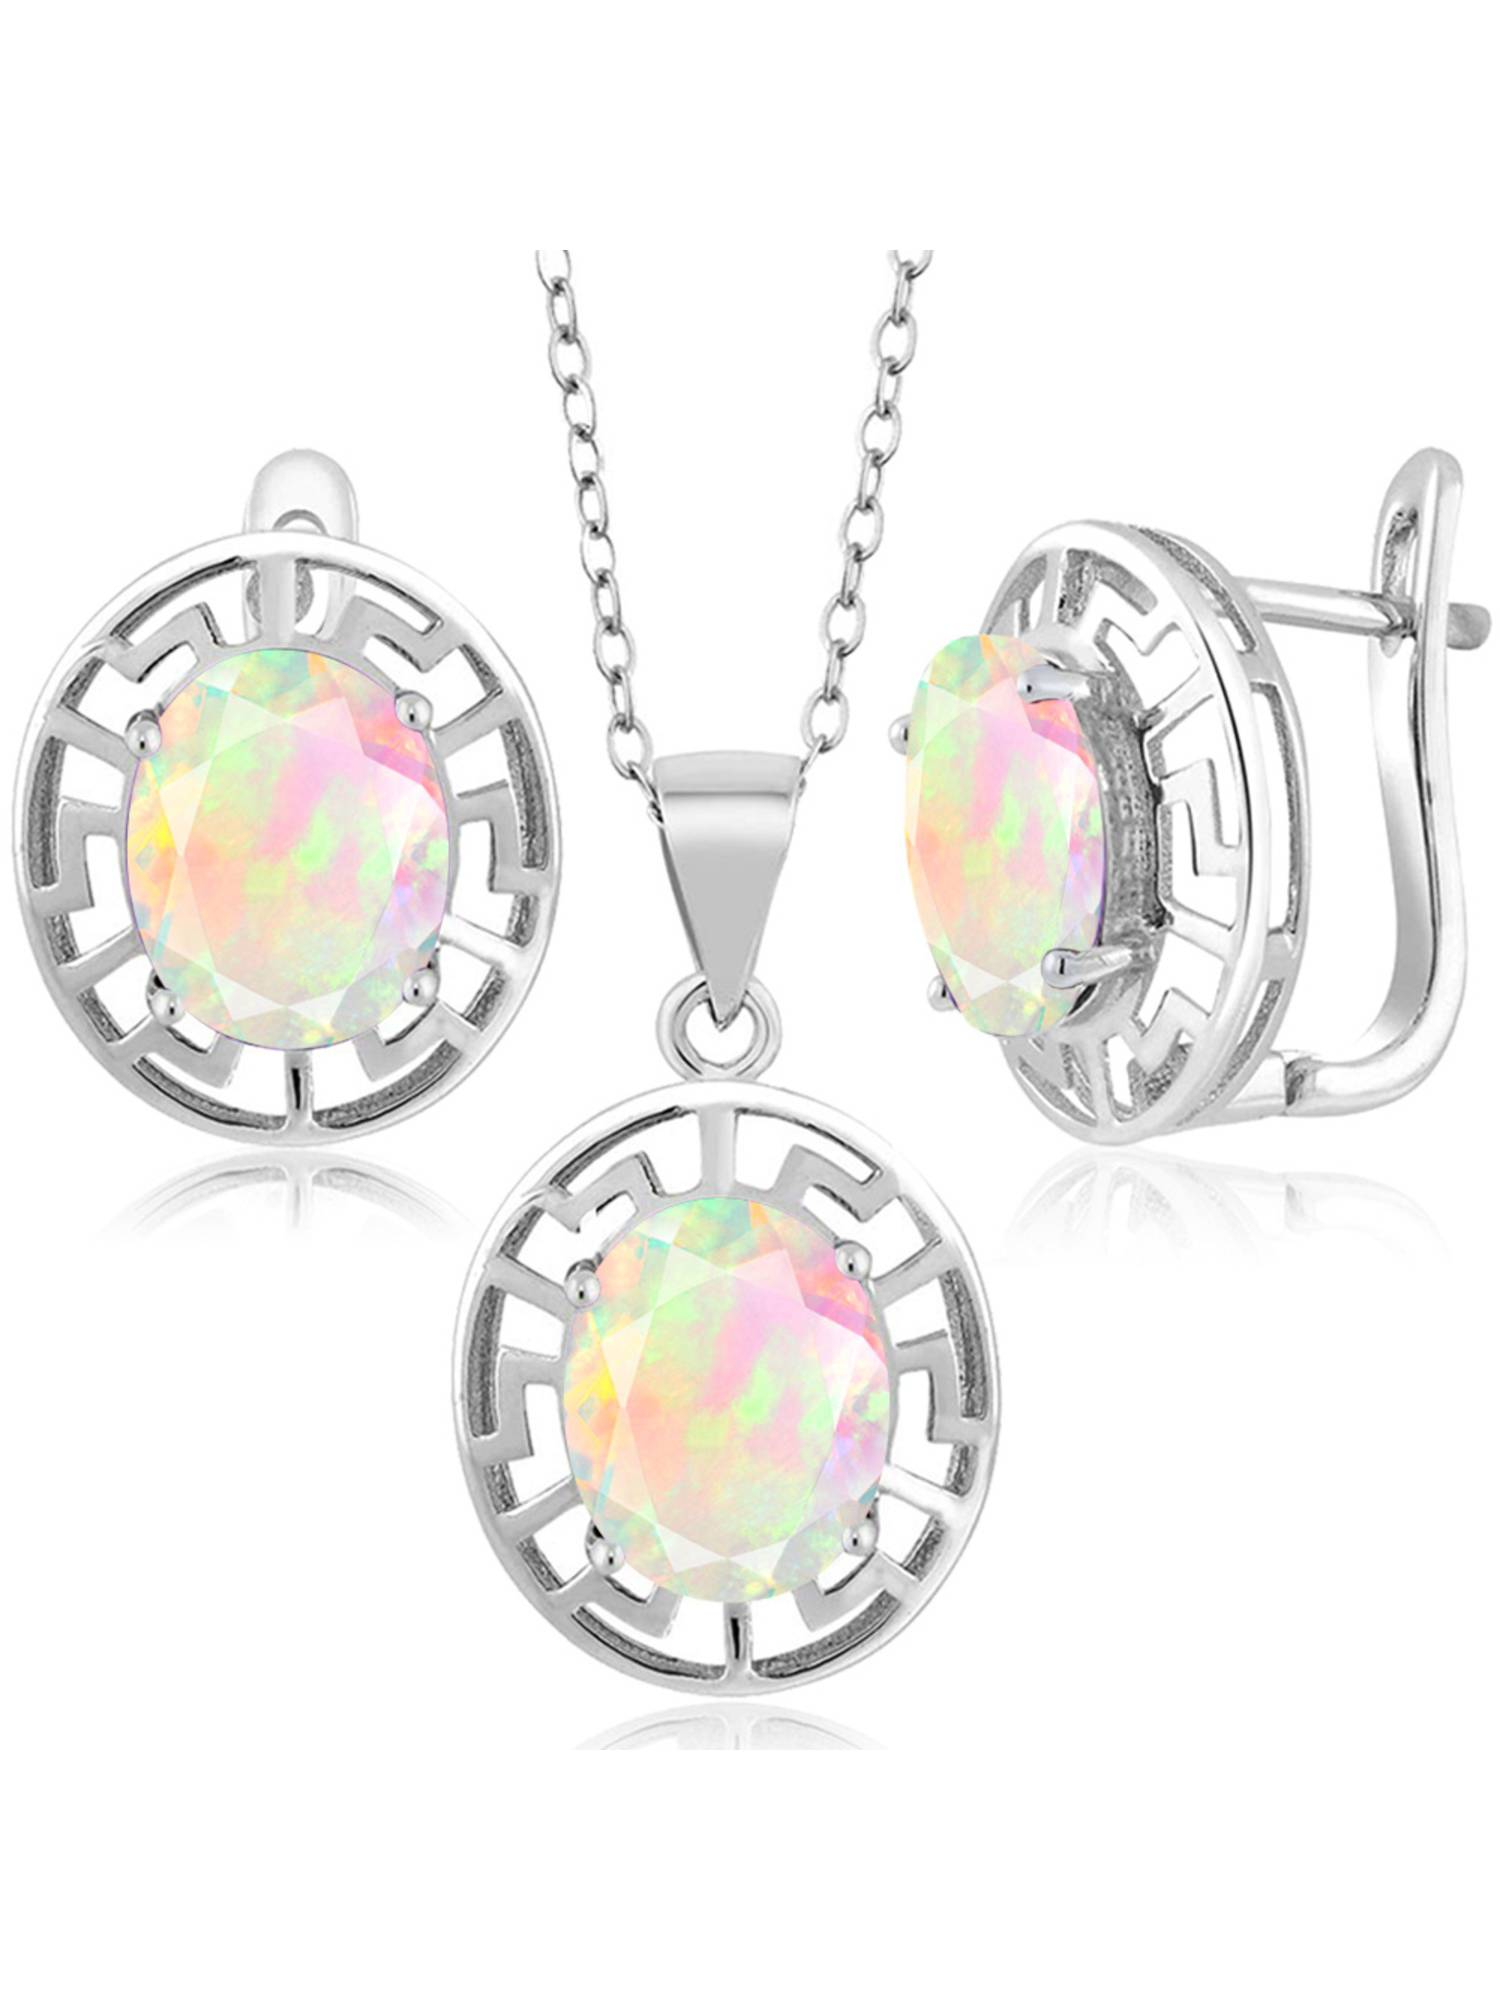 3.81 Ct Oval White Opal 925 Sterling Silver Pendant Earrings Set With Chain by